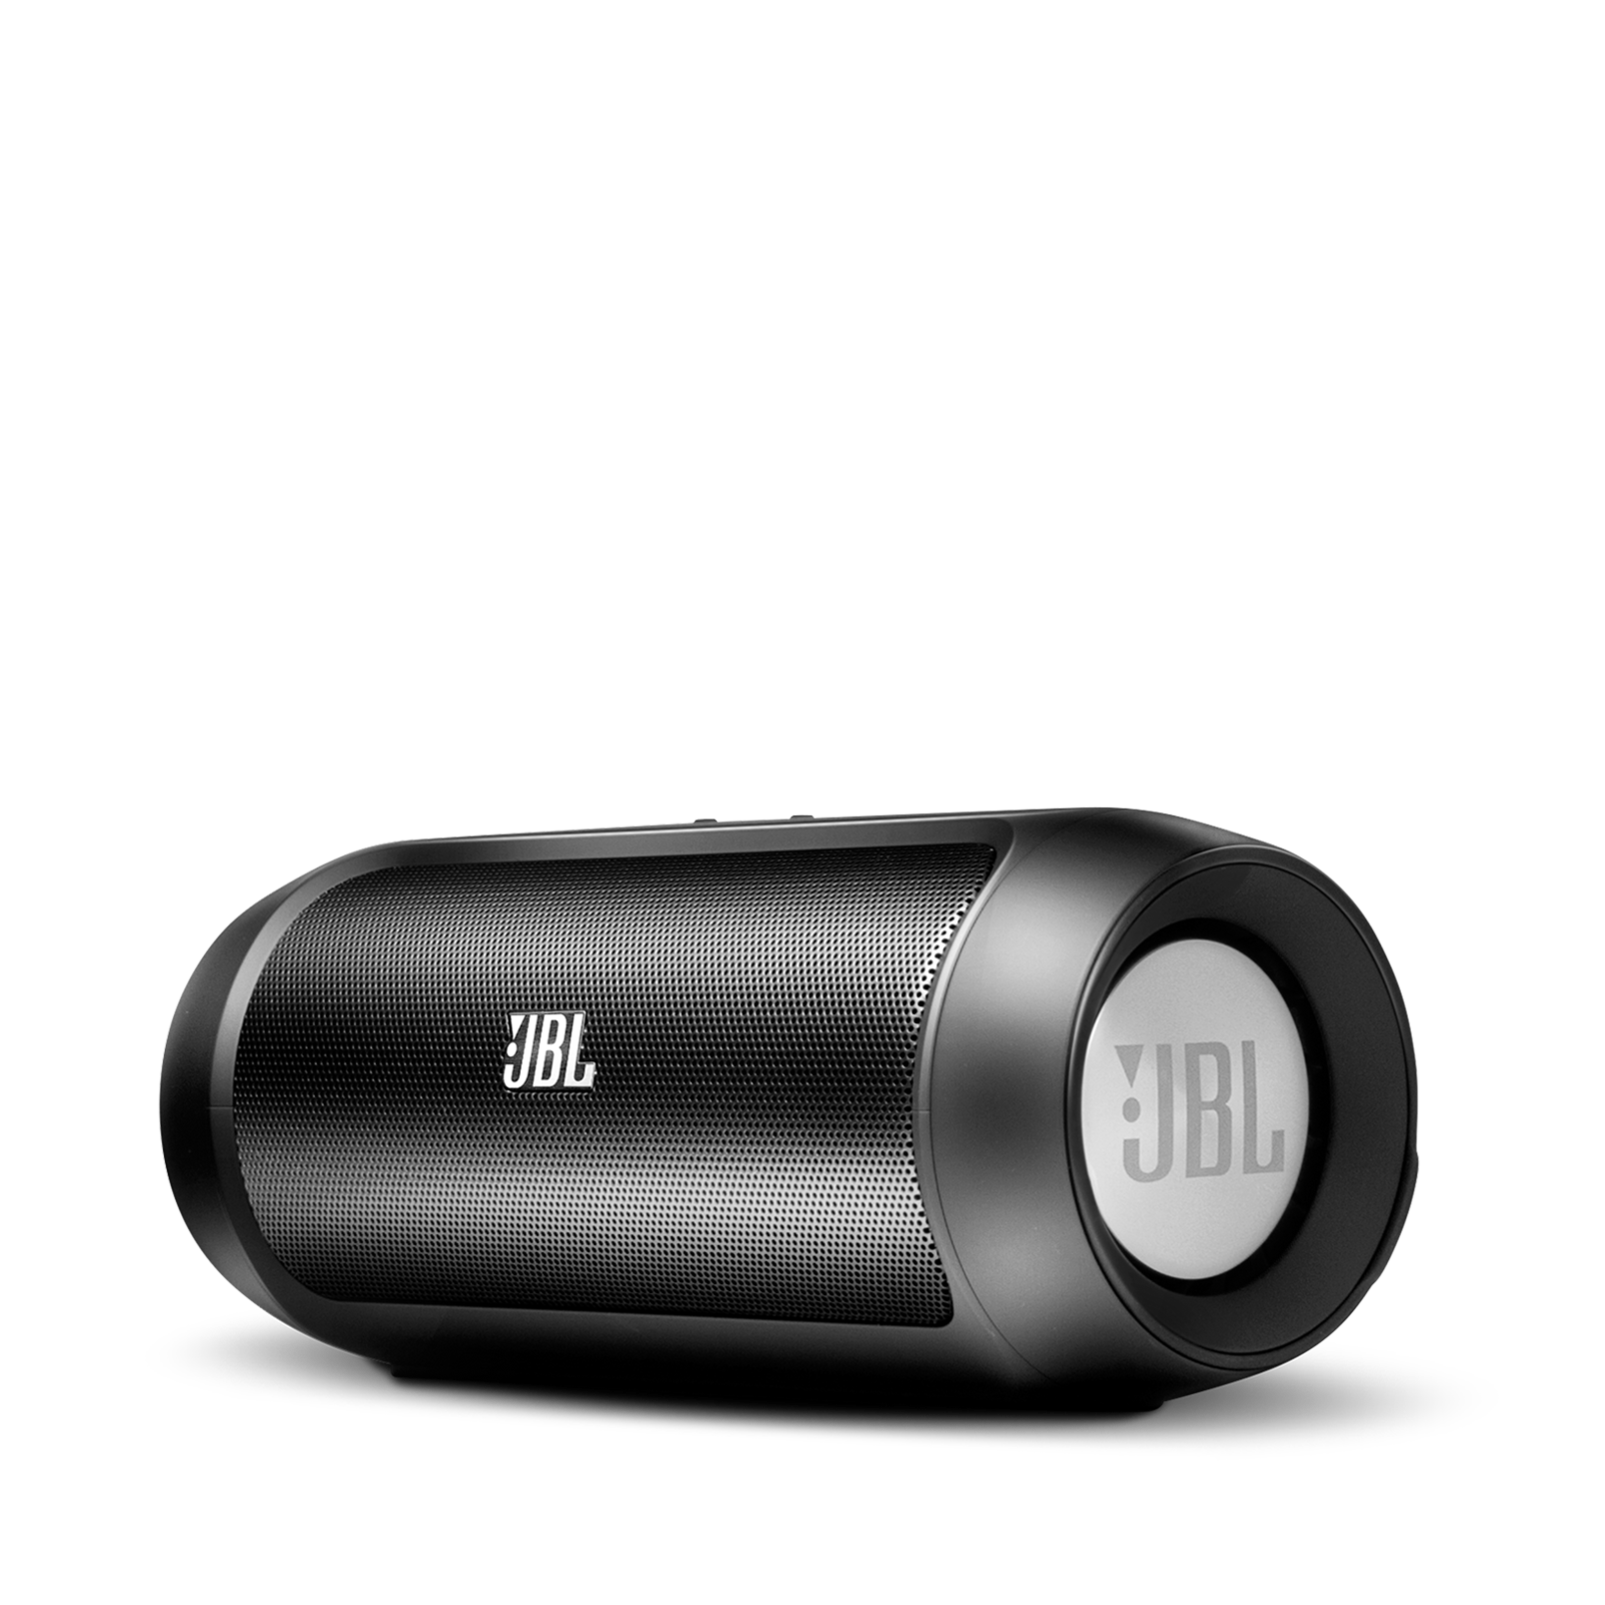 JBL Charge 2 Bluetooth Speaker w/ USB Charger (Refurbished)  $60 + Free 2-Day Shipping